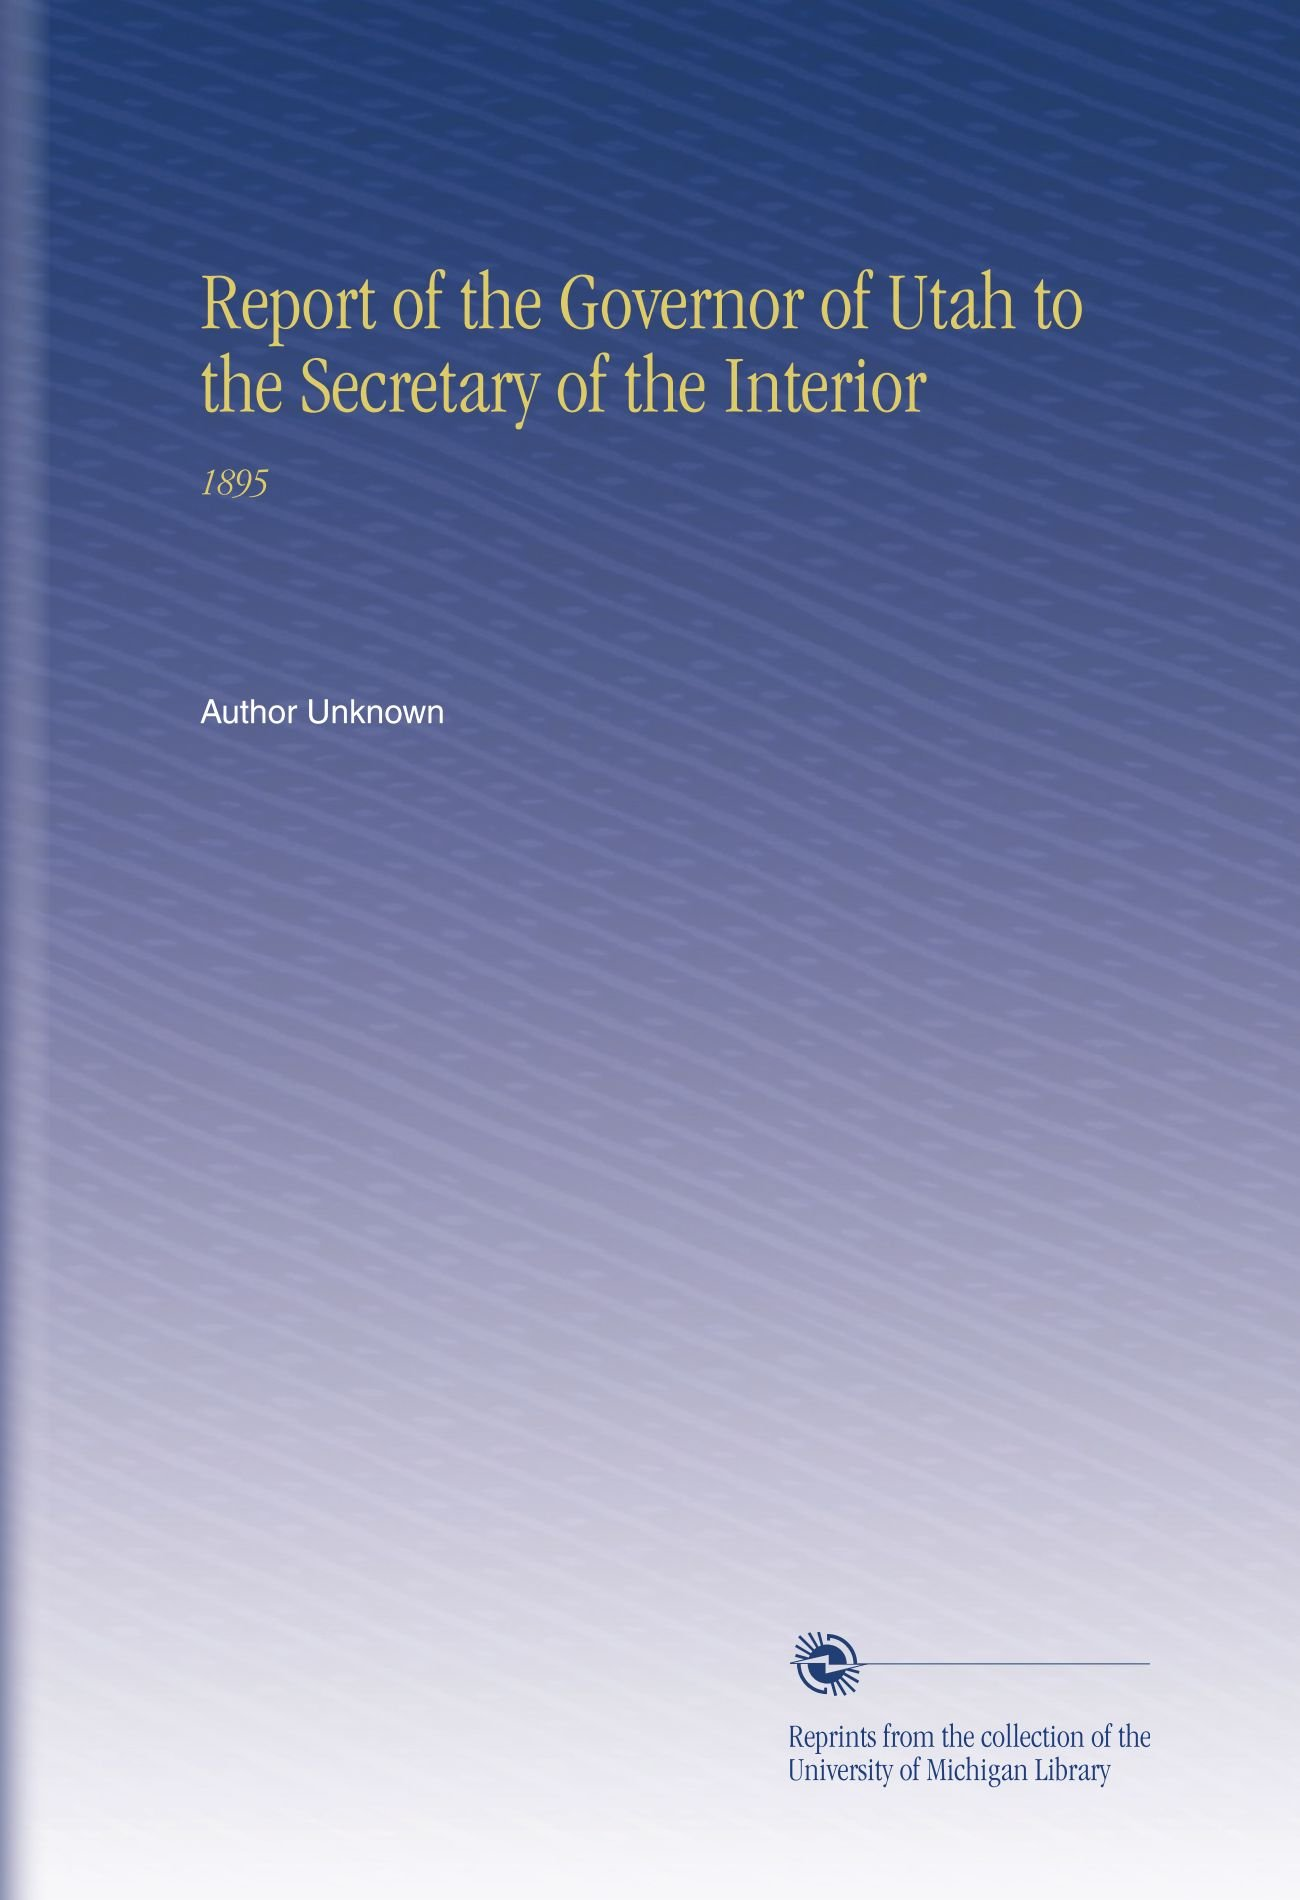 Report of the Governor of Utah to the Secretary of the Interior: 1895 pdf